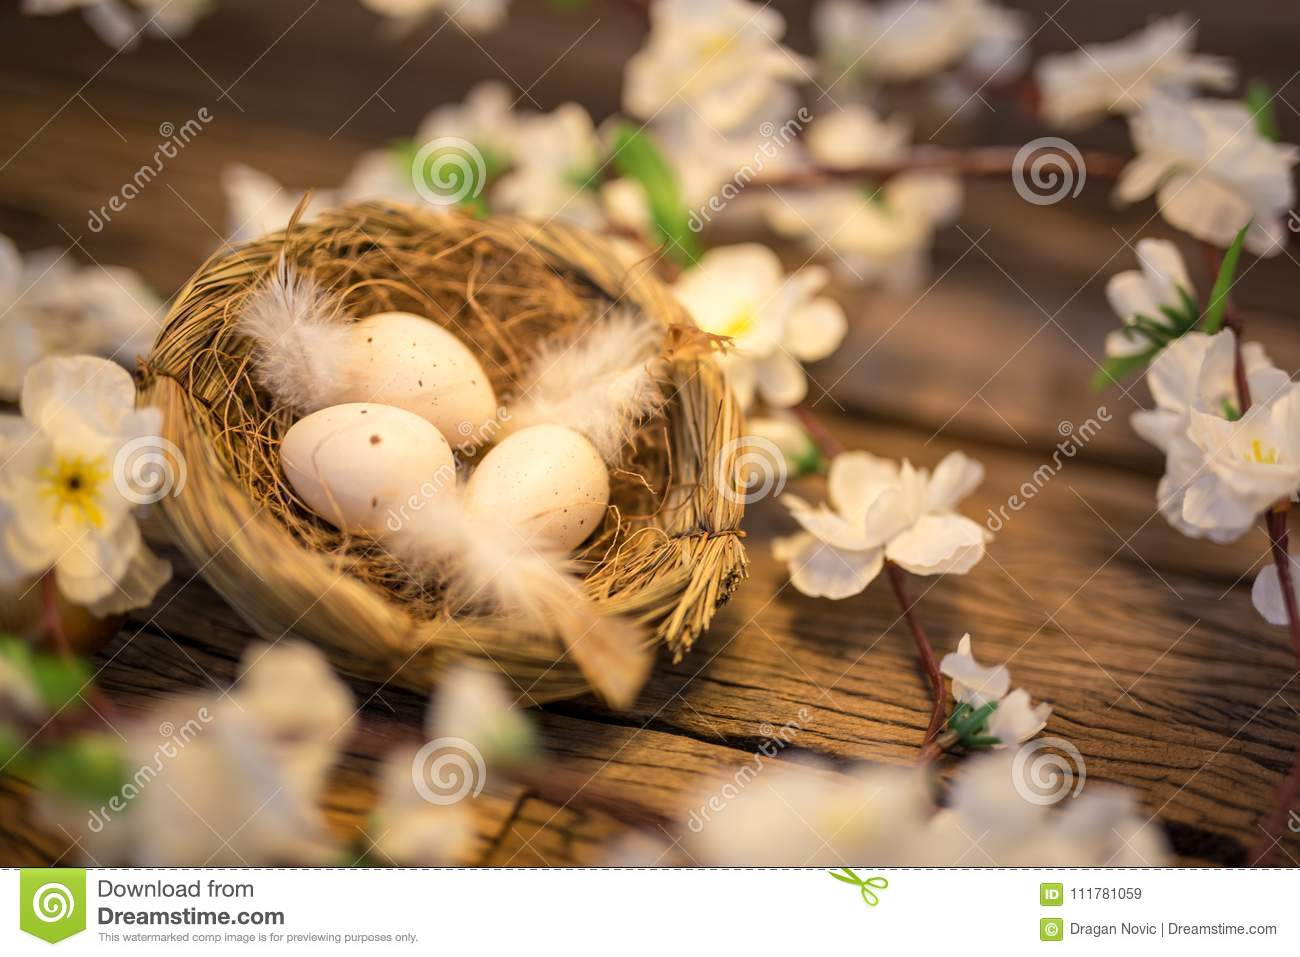 Easter quail eggs in a birds nest on a wooden background